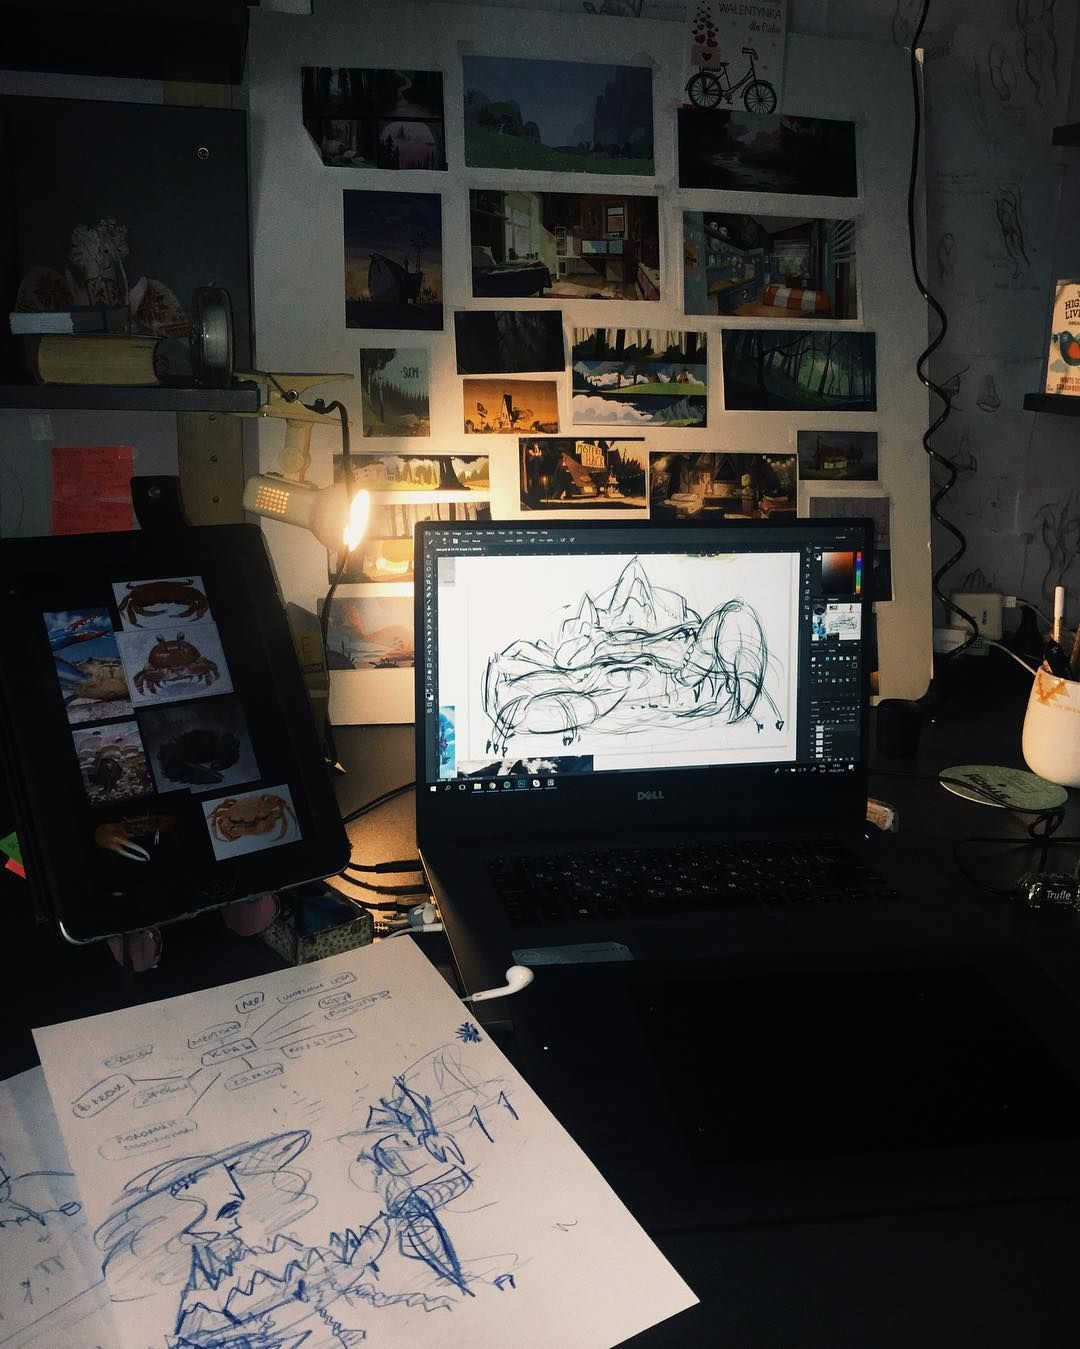 Decided to share my workspace with you